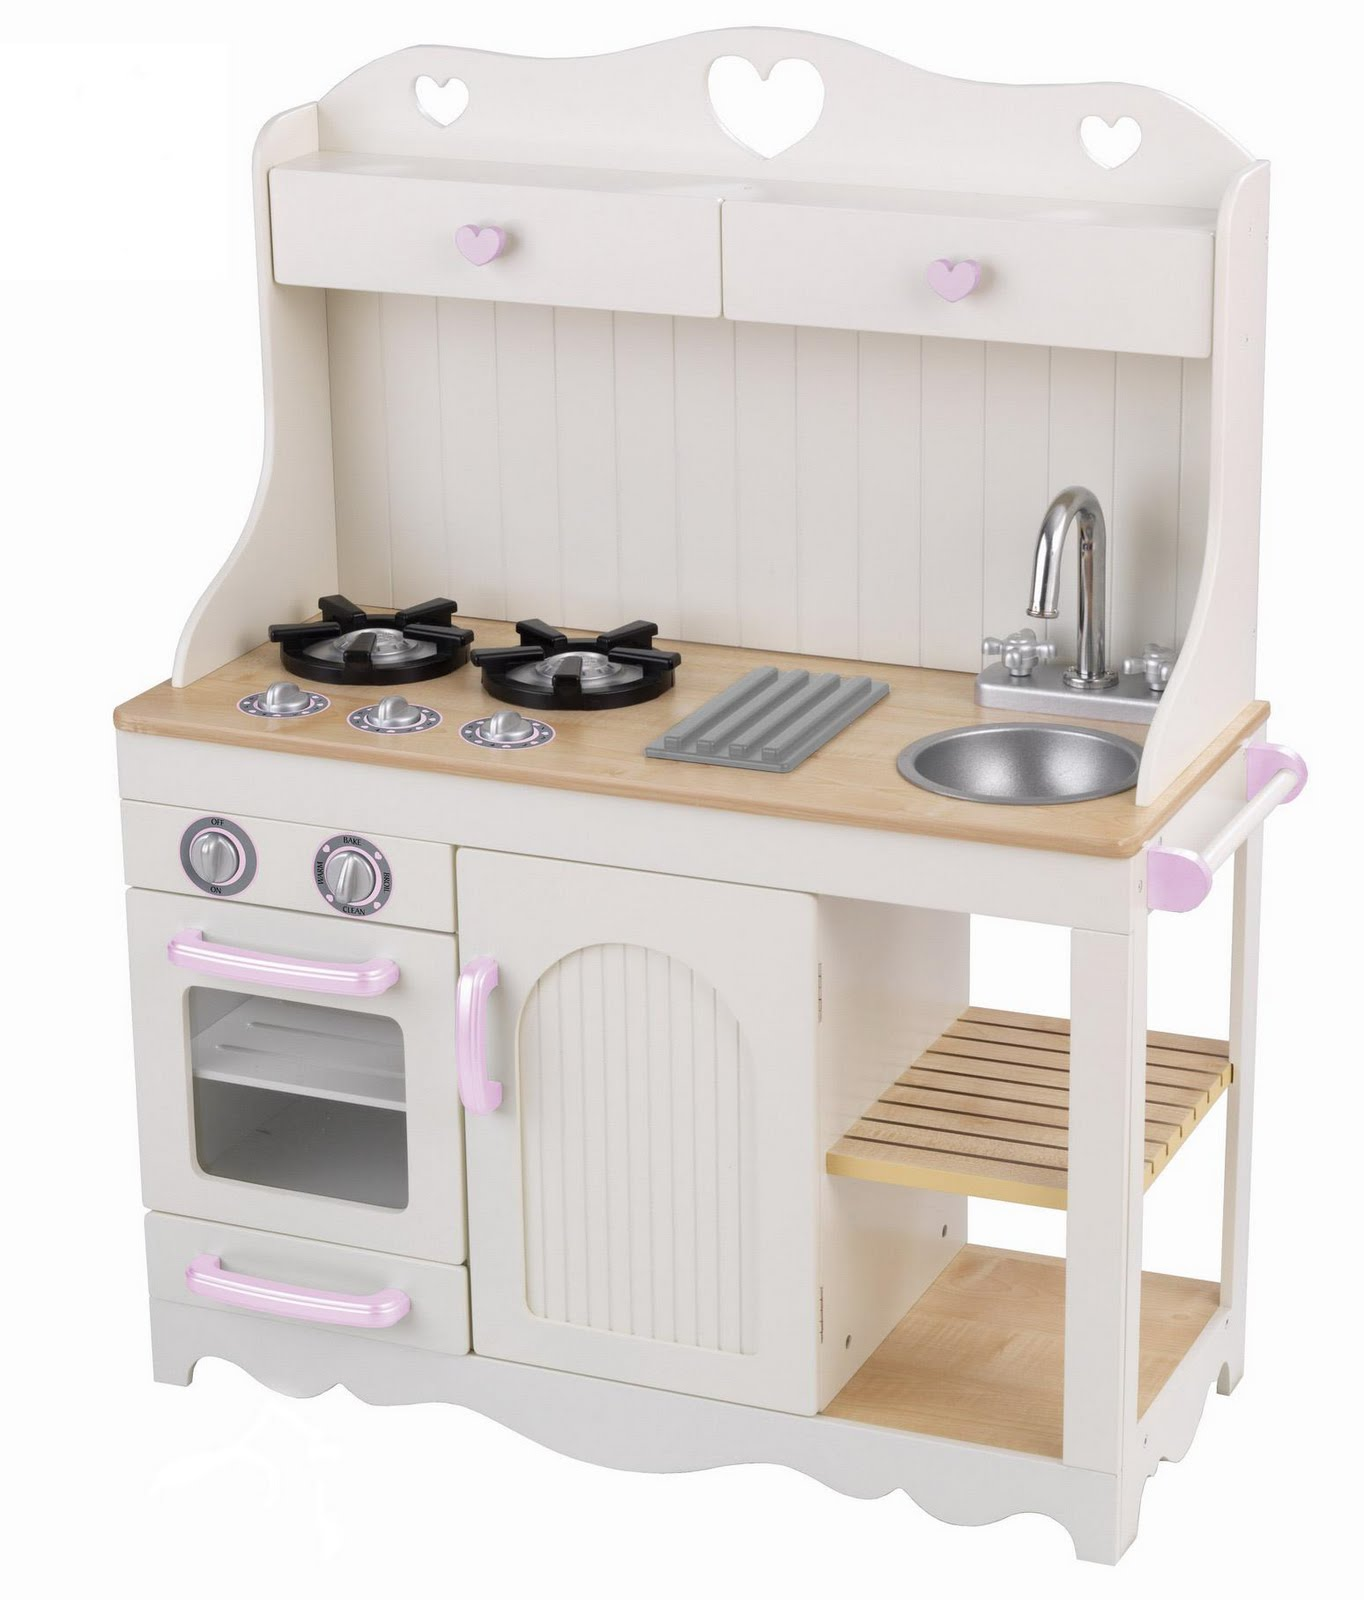 cool-girl-zone: Wooden Toy Kitchens for Little Girls and Boys